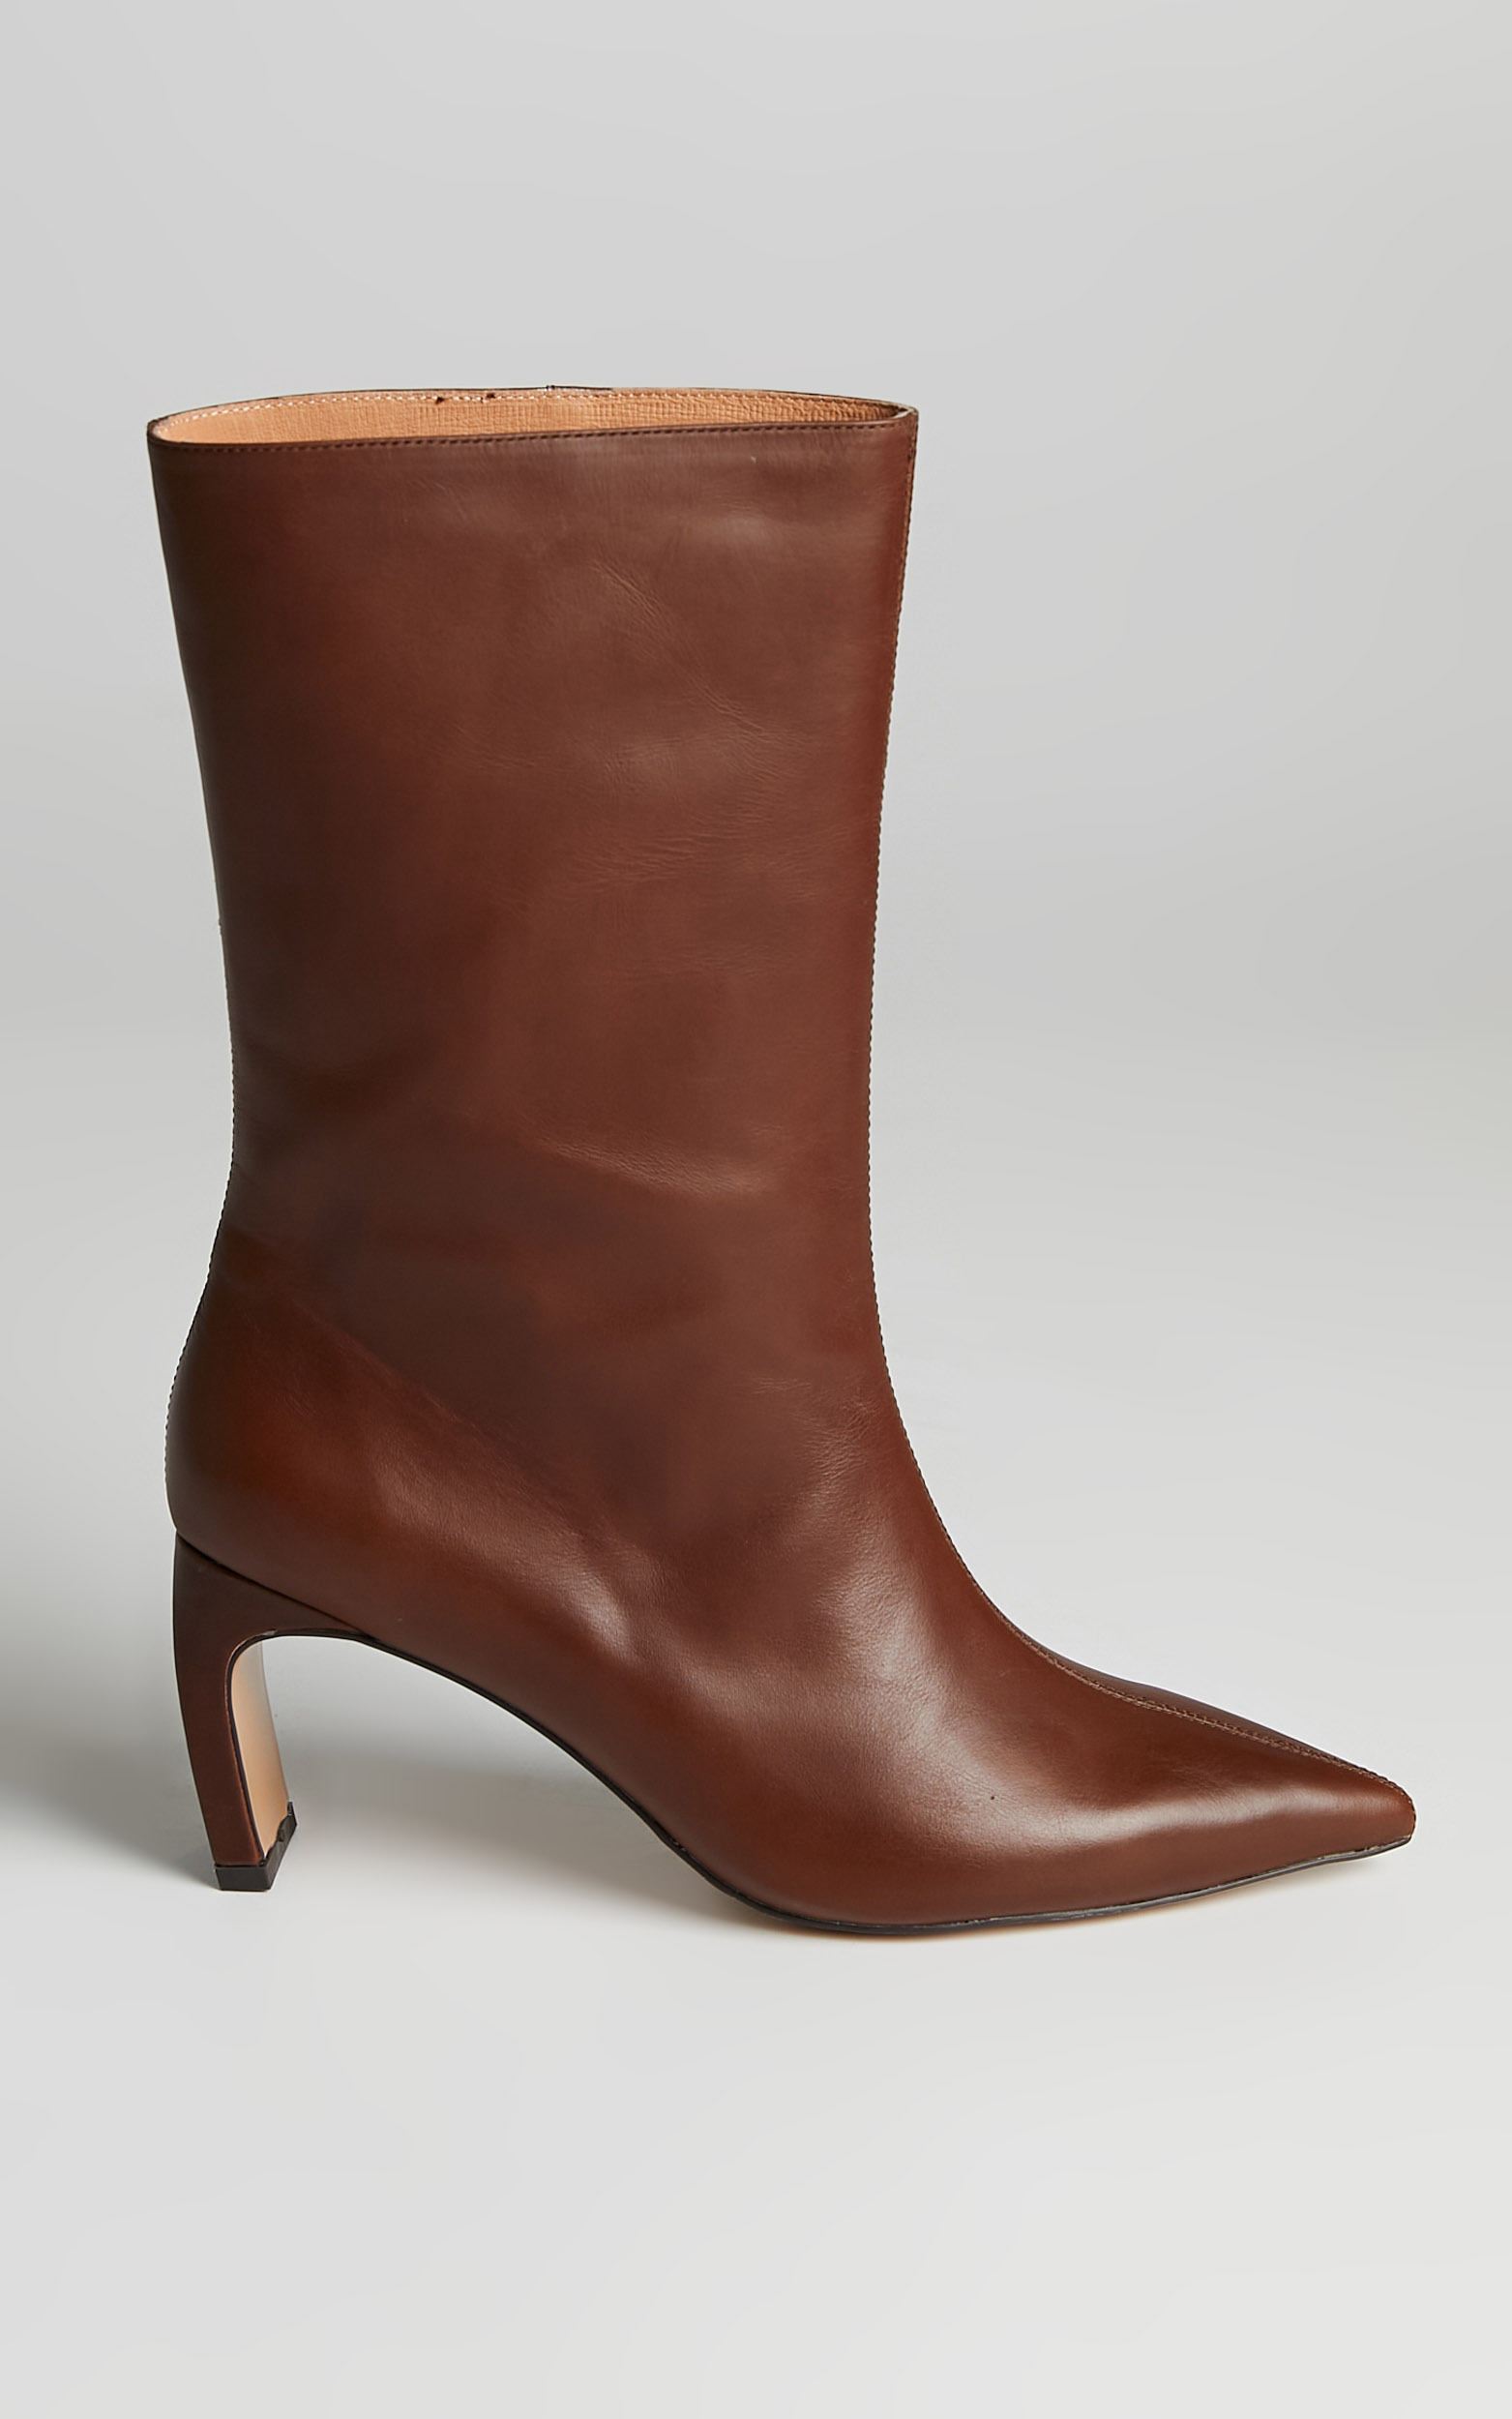 Alias Mae - Jax Boots in Choc Leather - 10.5, BRN2, hi-res image number null